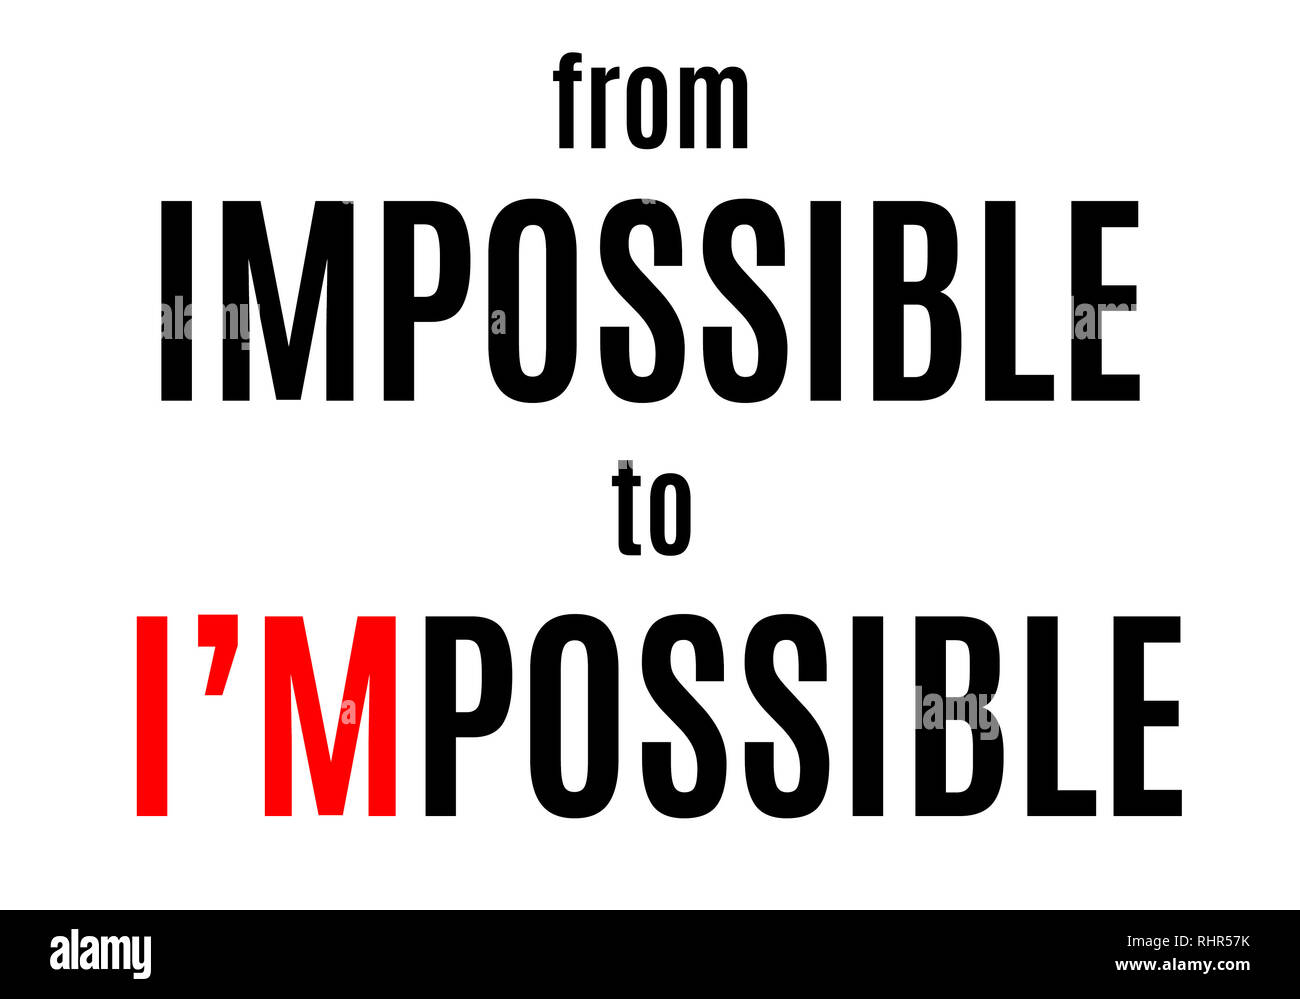 From impossible to i'm possible - Stock Image